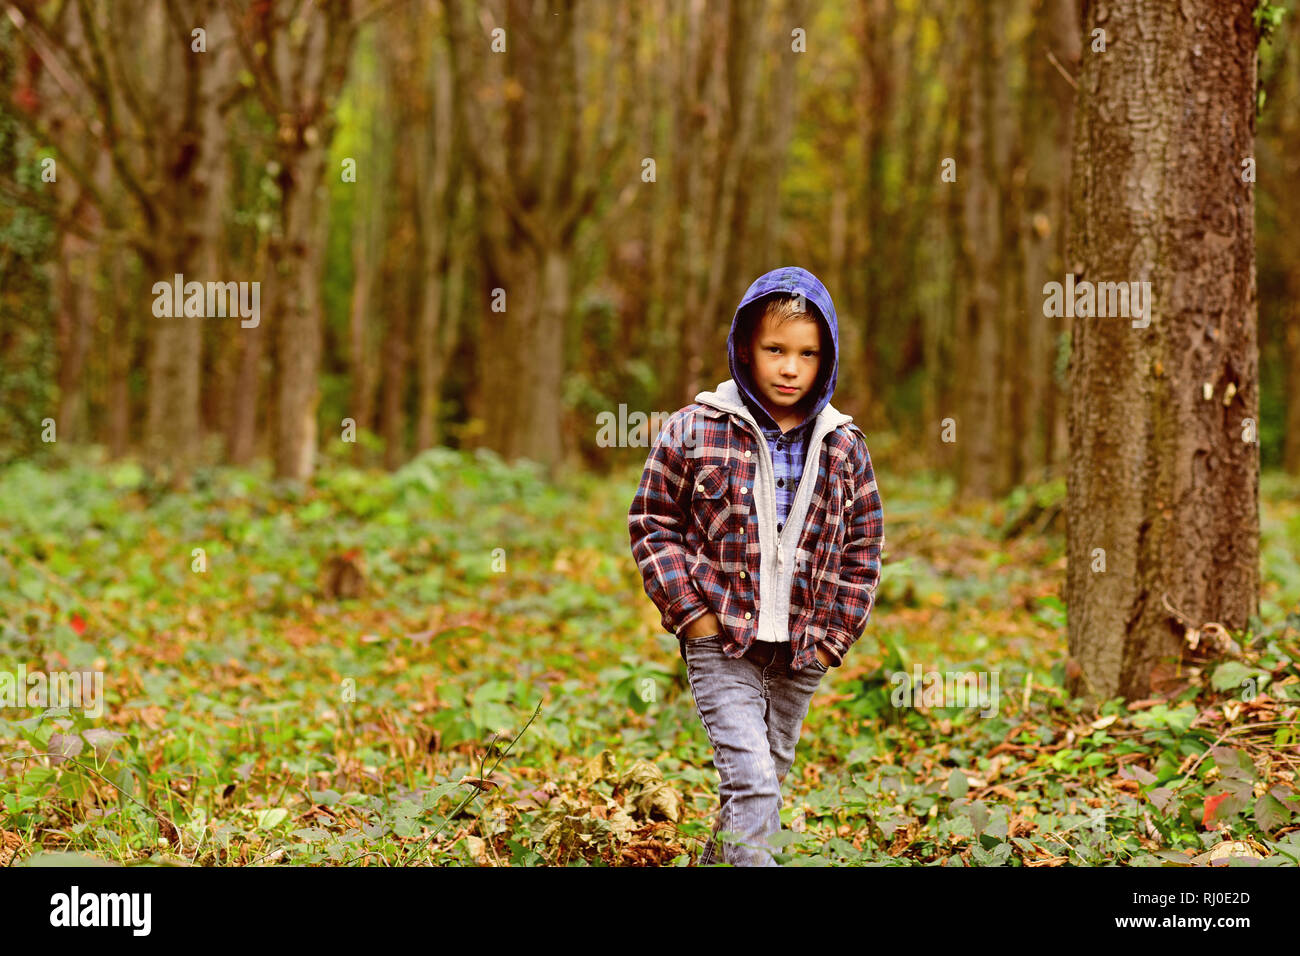 Small hipster. Small boy travel in autumn woods. Small boy look more hipster than homeless. Because Im a hipster - Stock Image